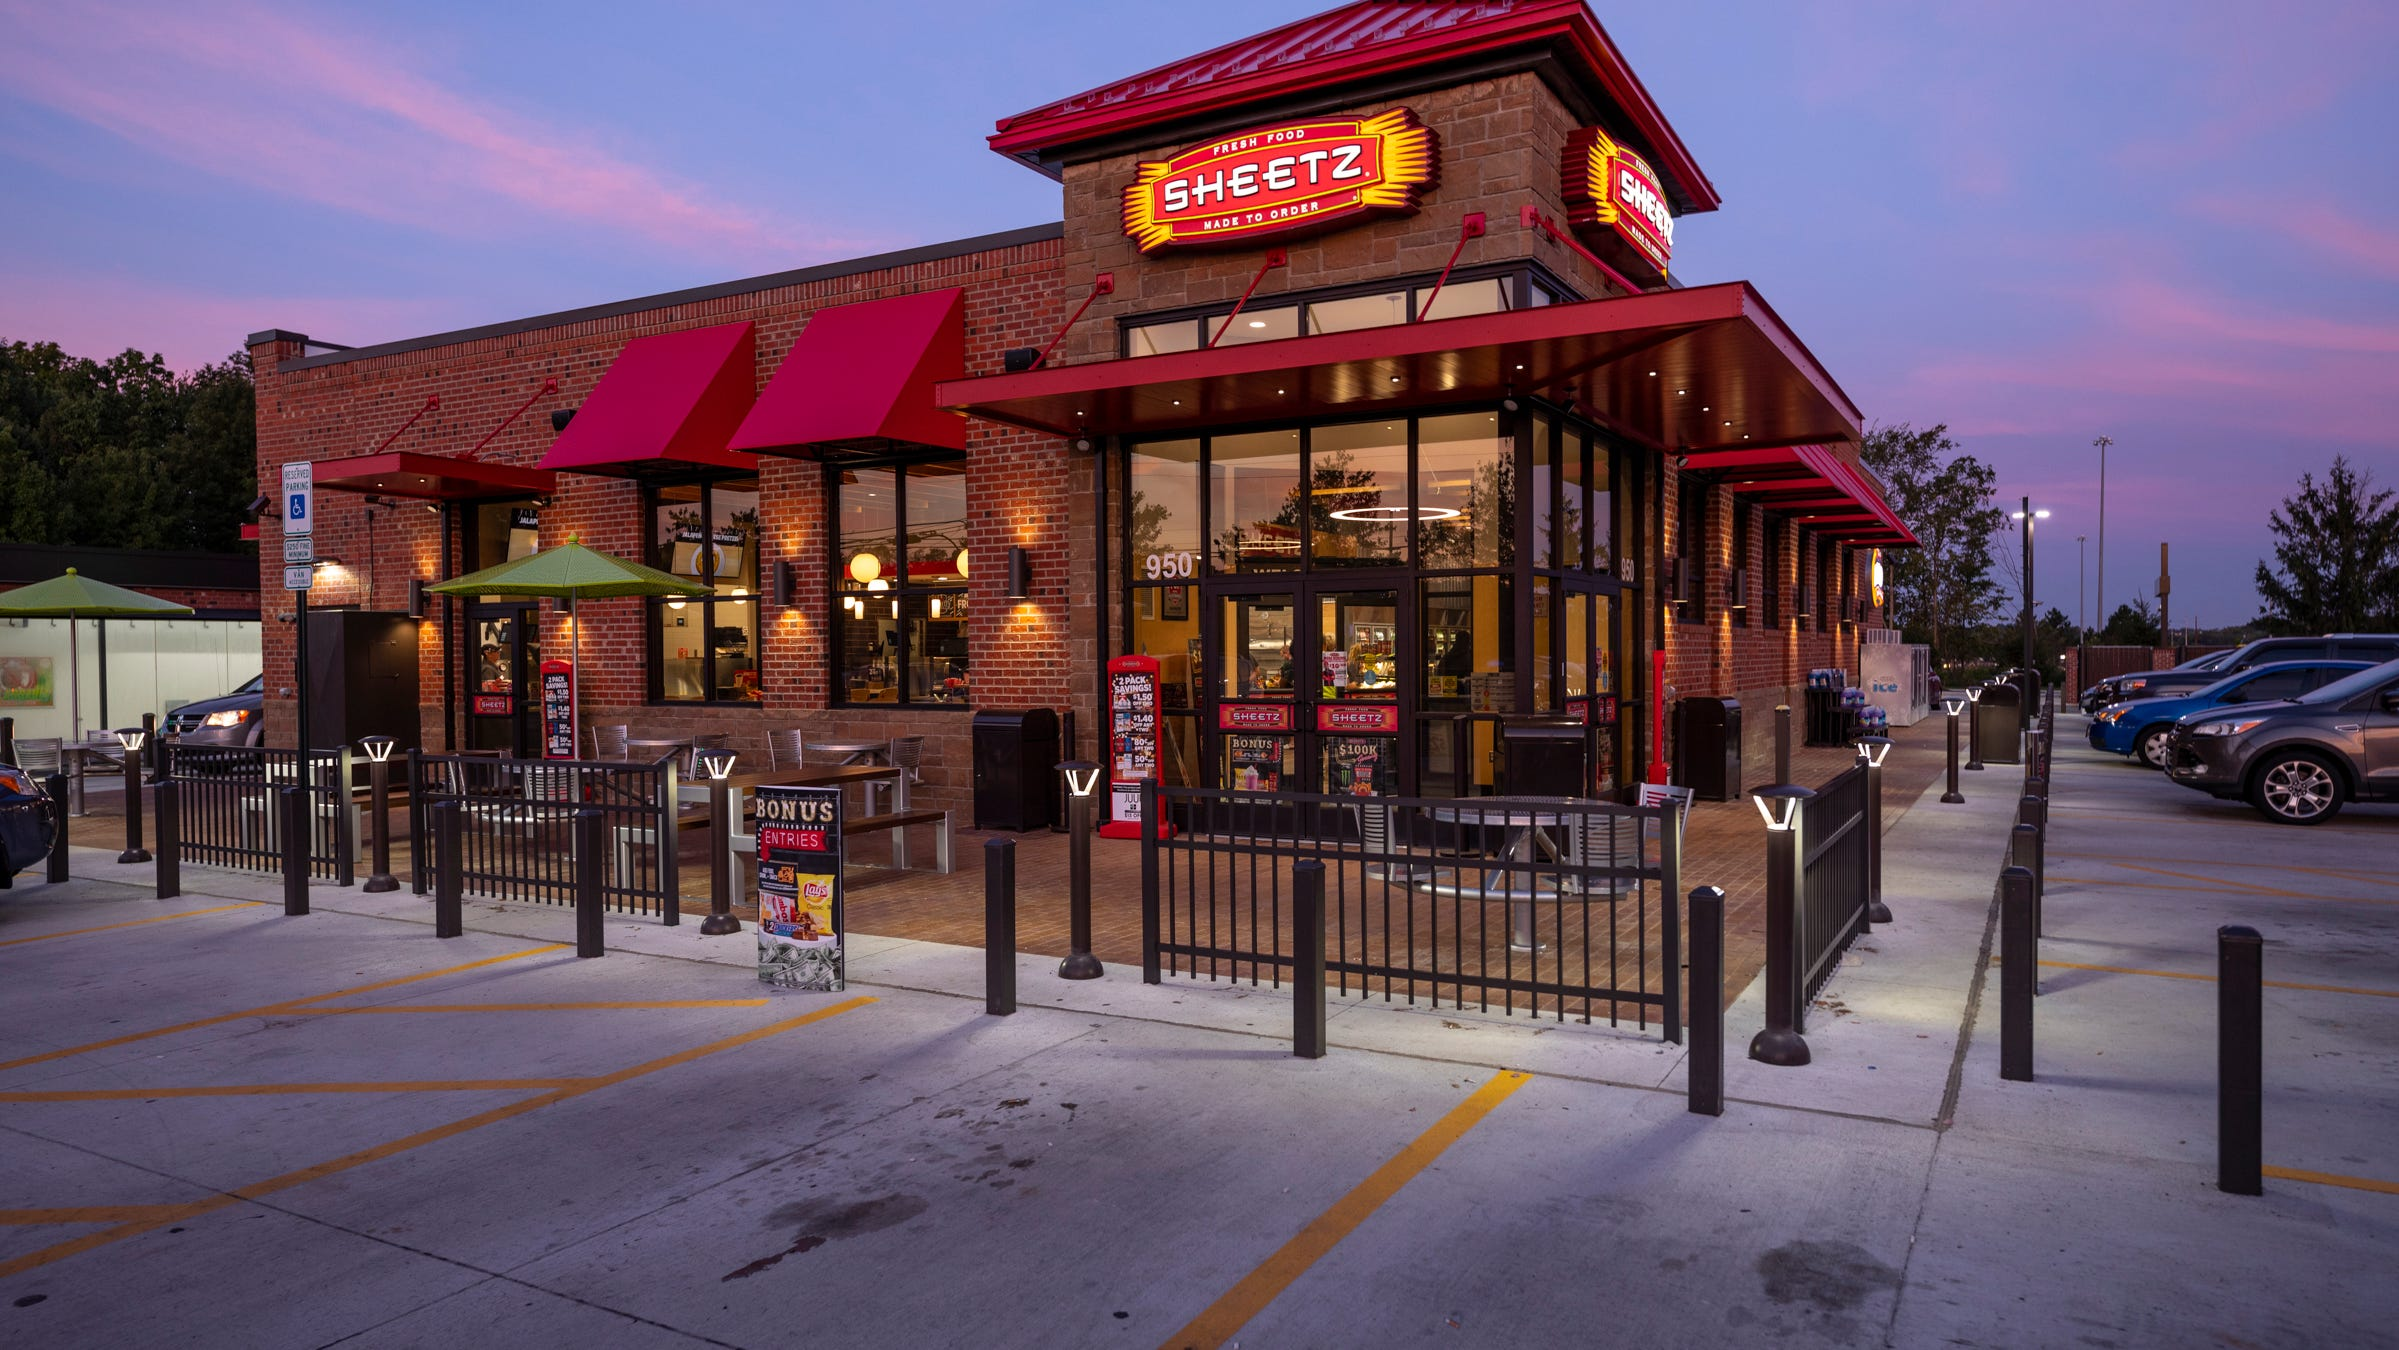 US Convenience Store Chain Sheetz to Accept Cryptocurrencies for Payments